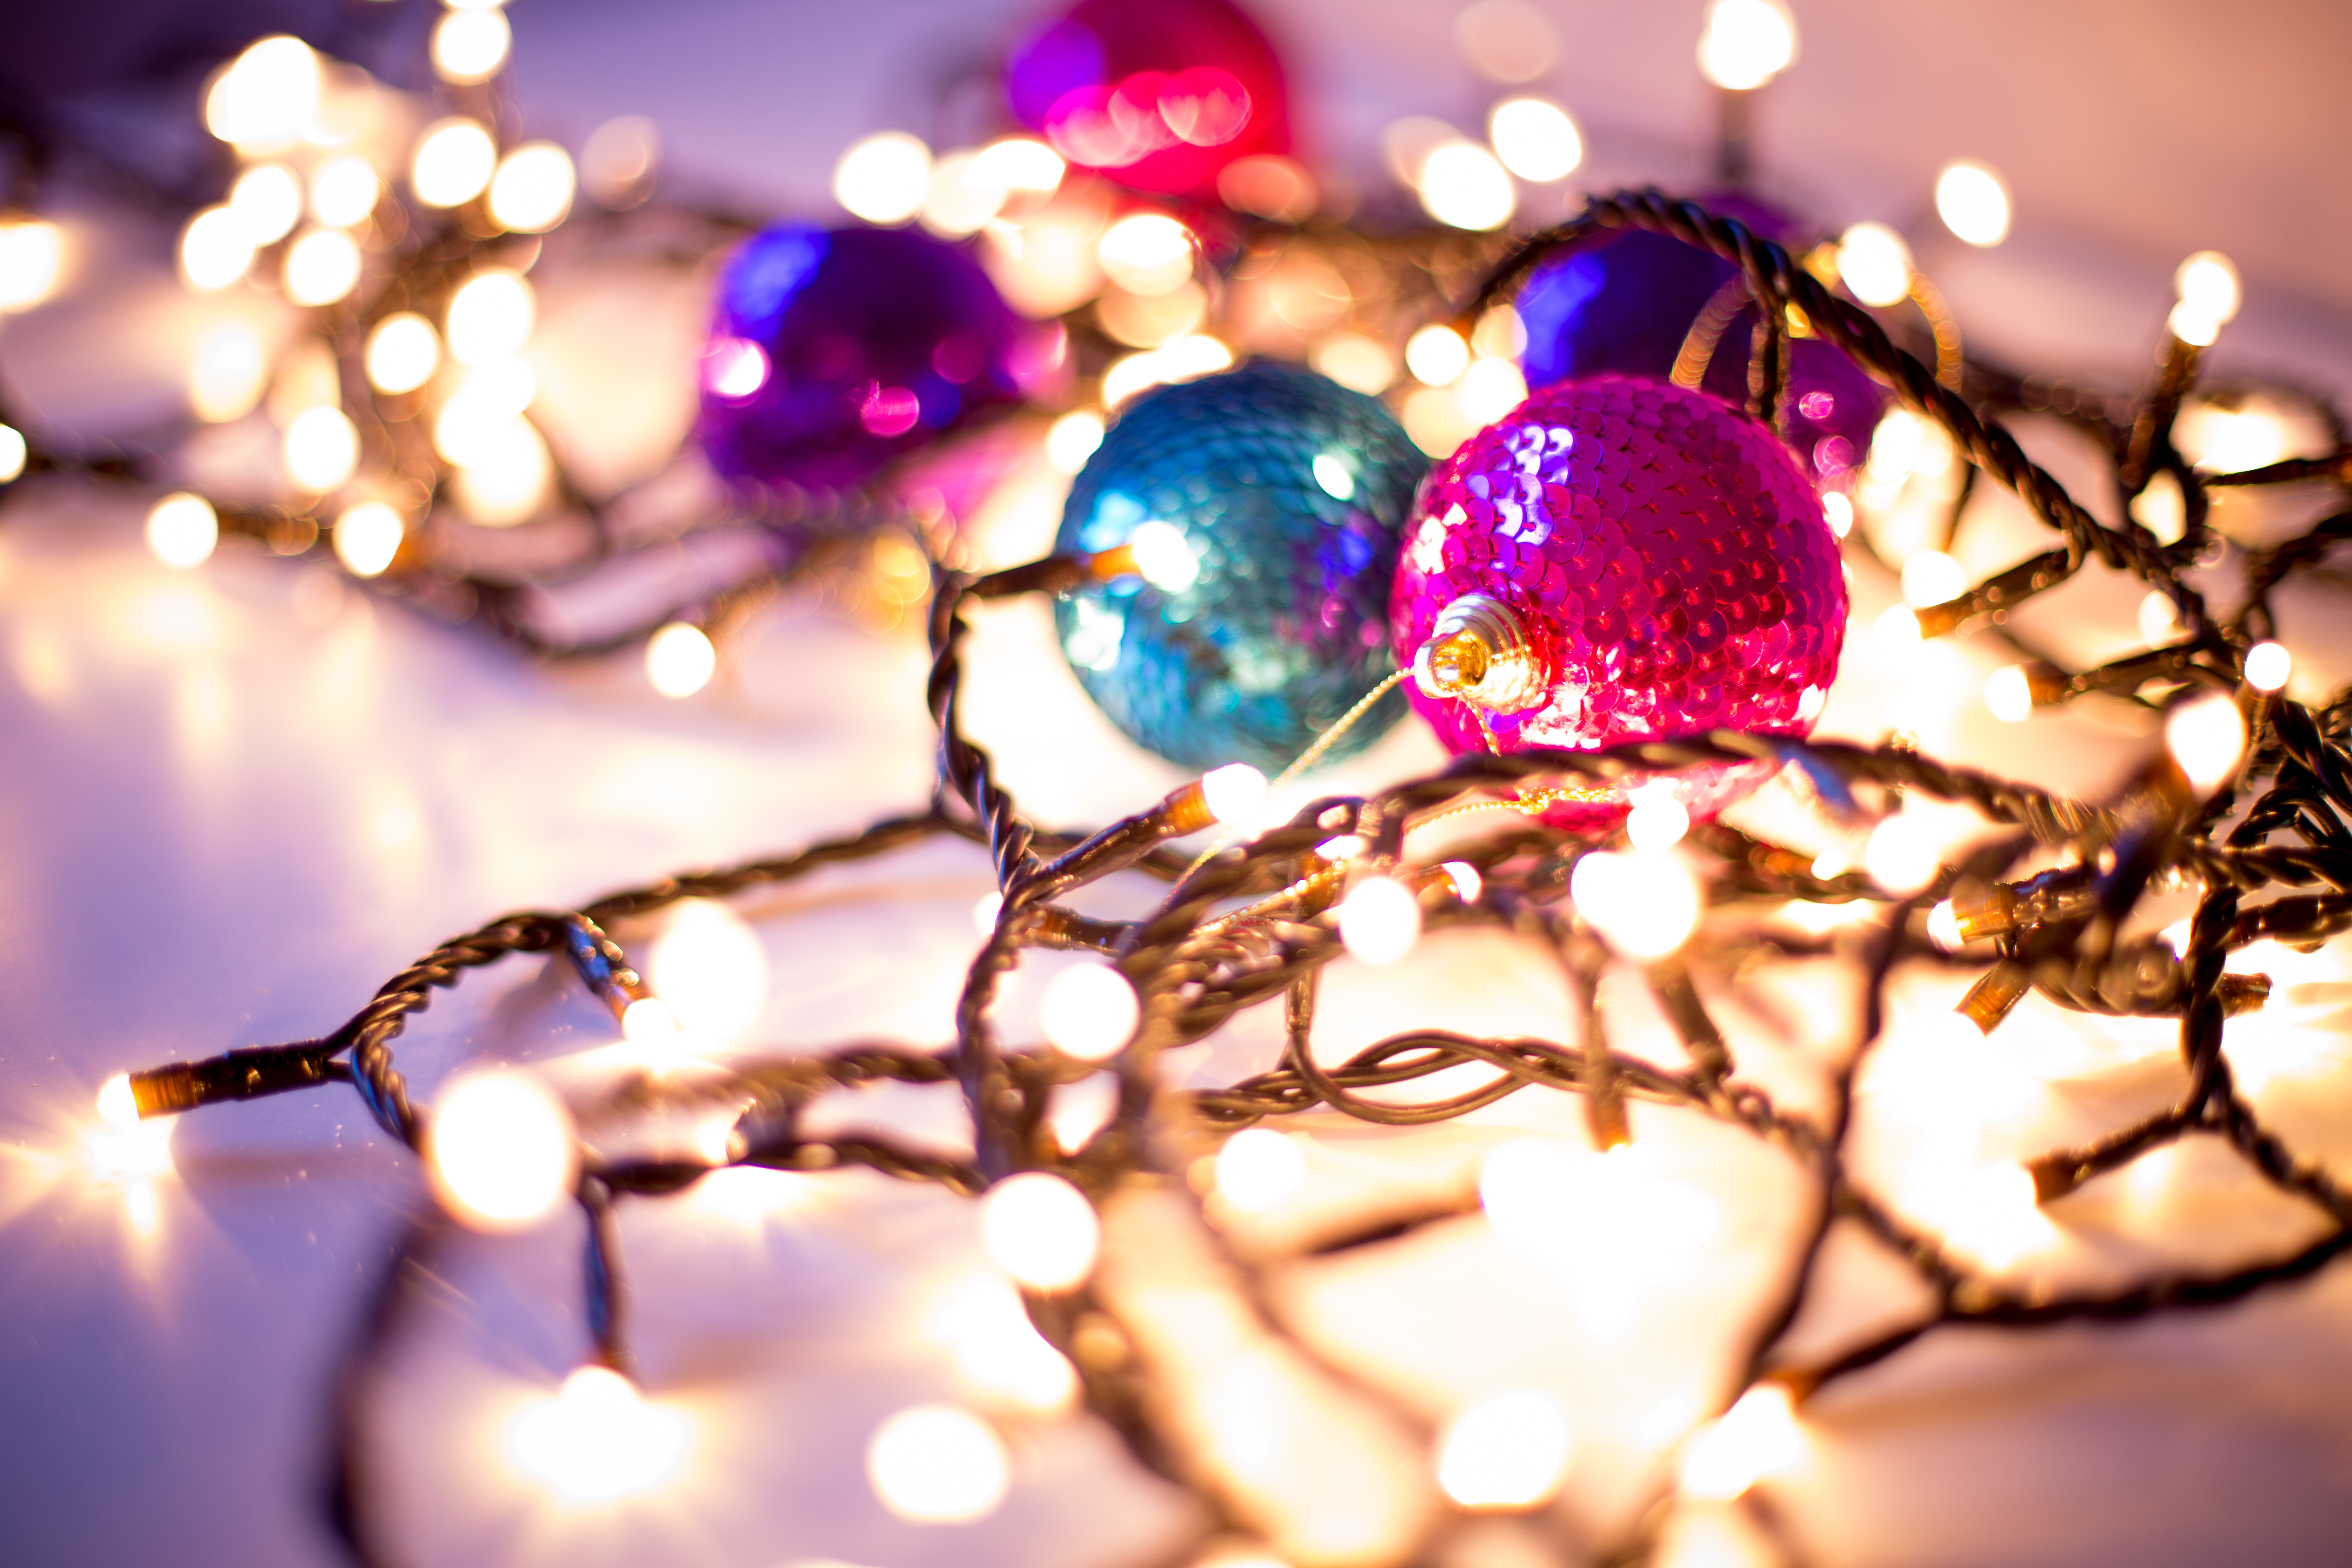 16 Gorgeous Christmas amp Holiday Themed Bokeh Wallpapers 5472x3648